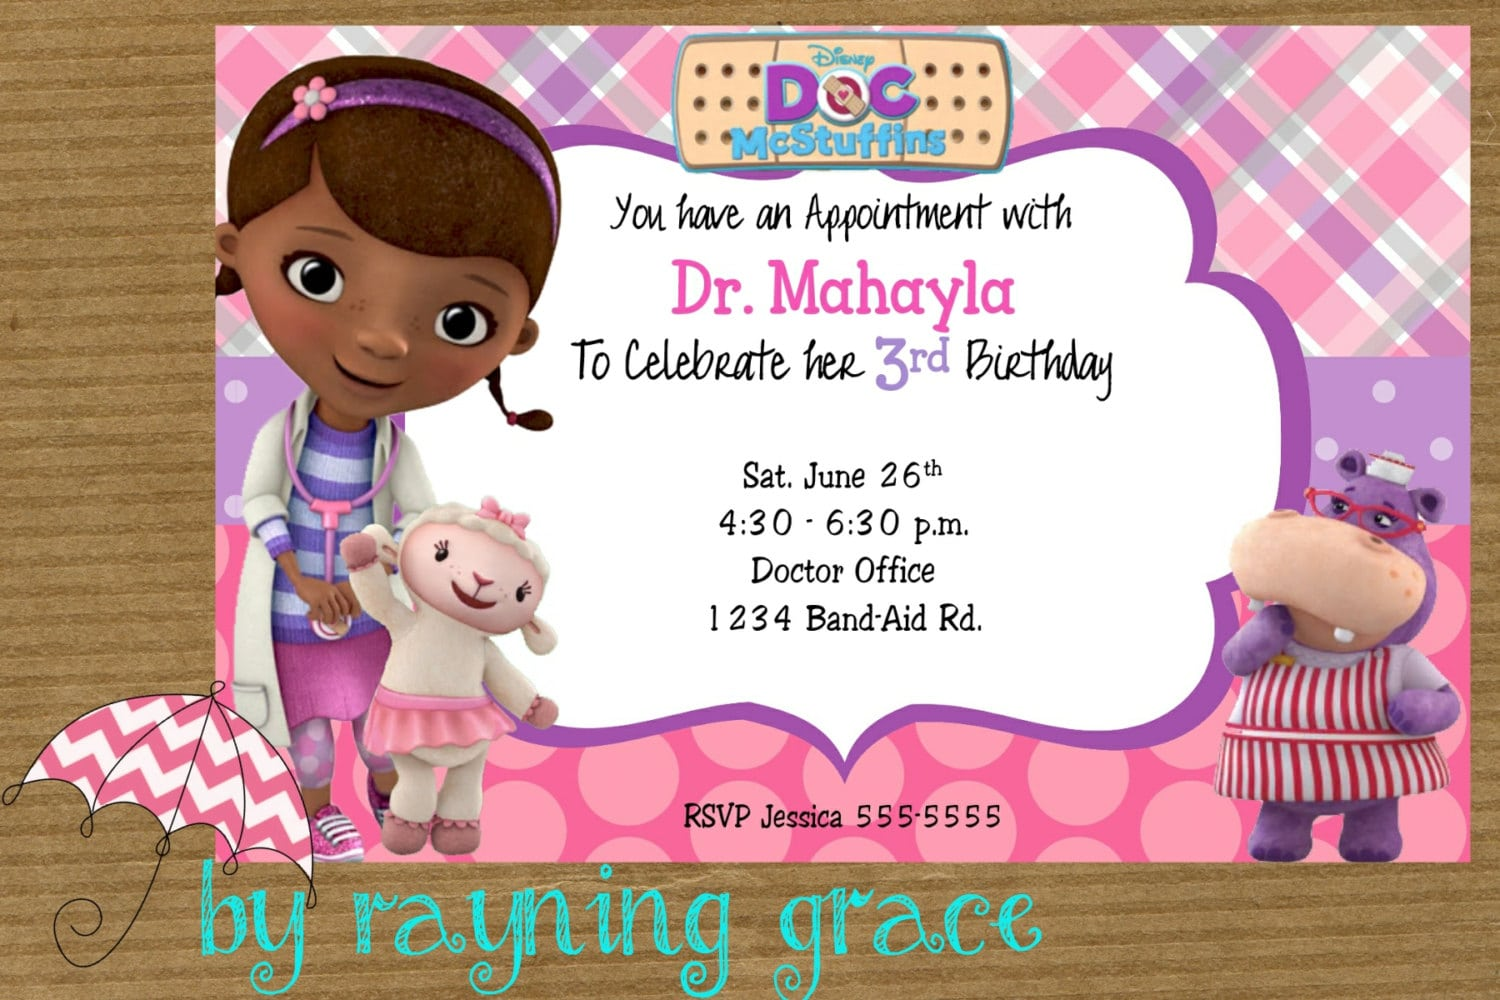 Doc Mcstuffins Party Invitations Doc Mcstuffins Party Invitations